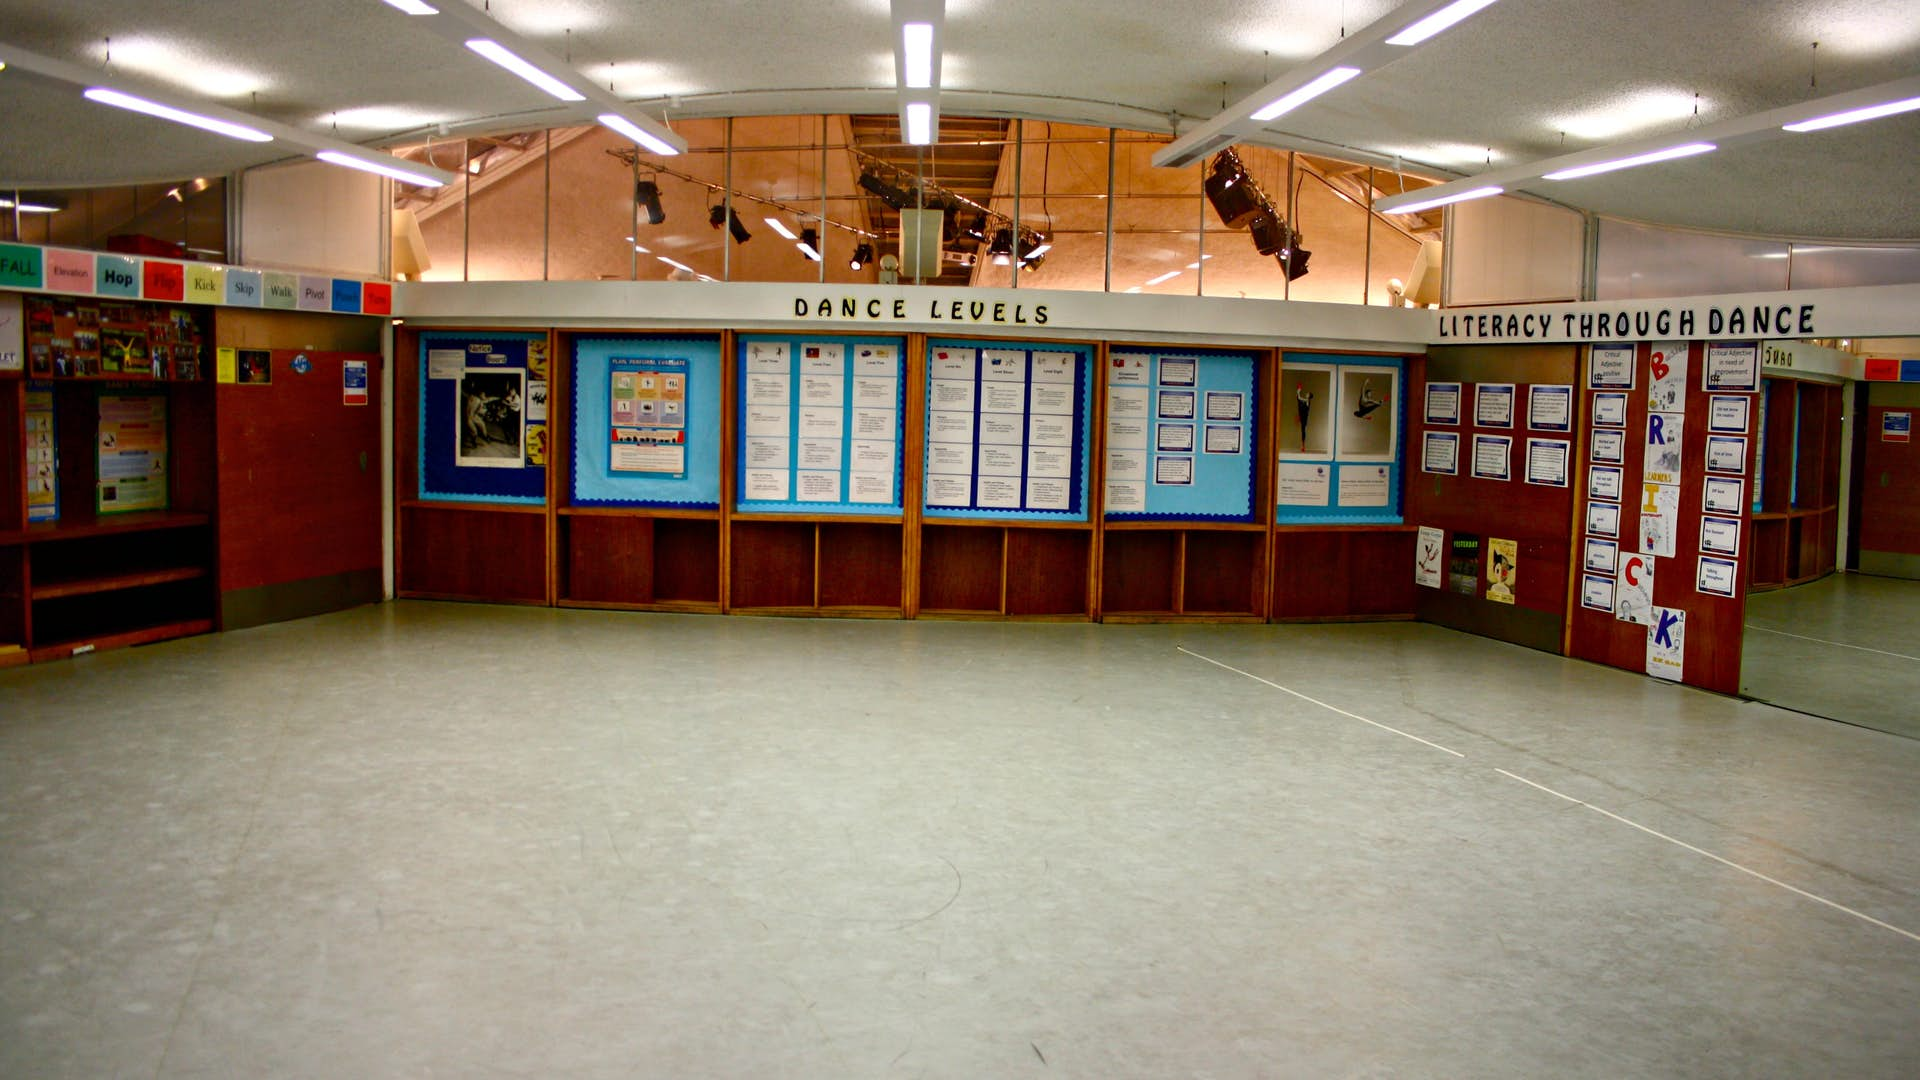 Dance studio arts hire globe venue for Porte arts and dance studio